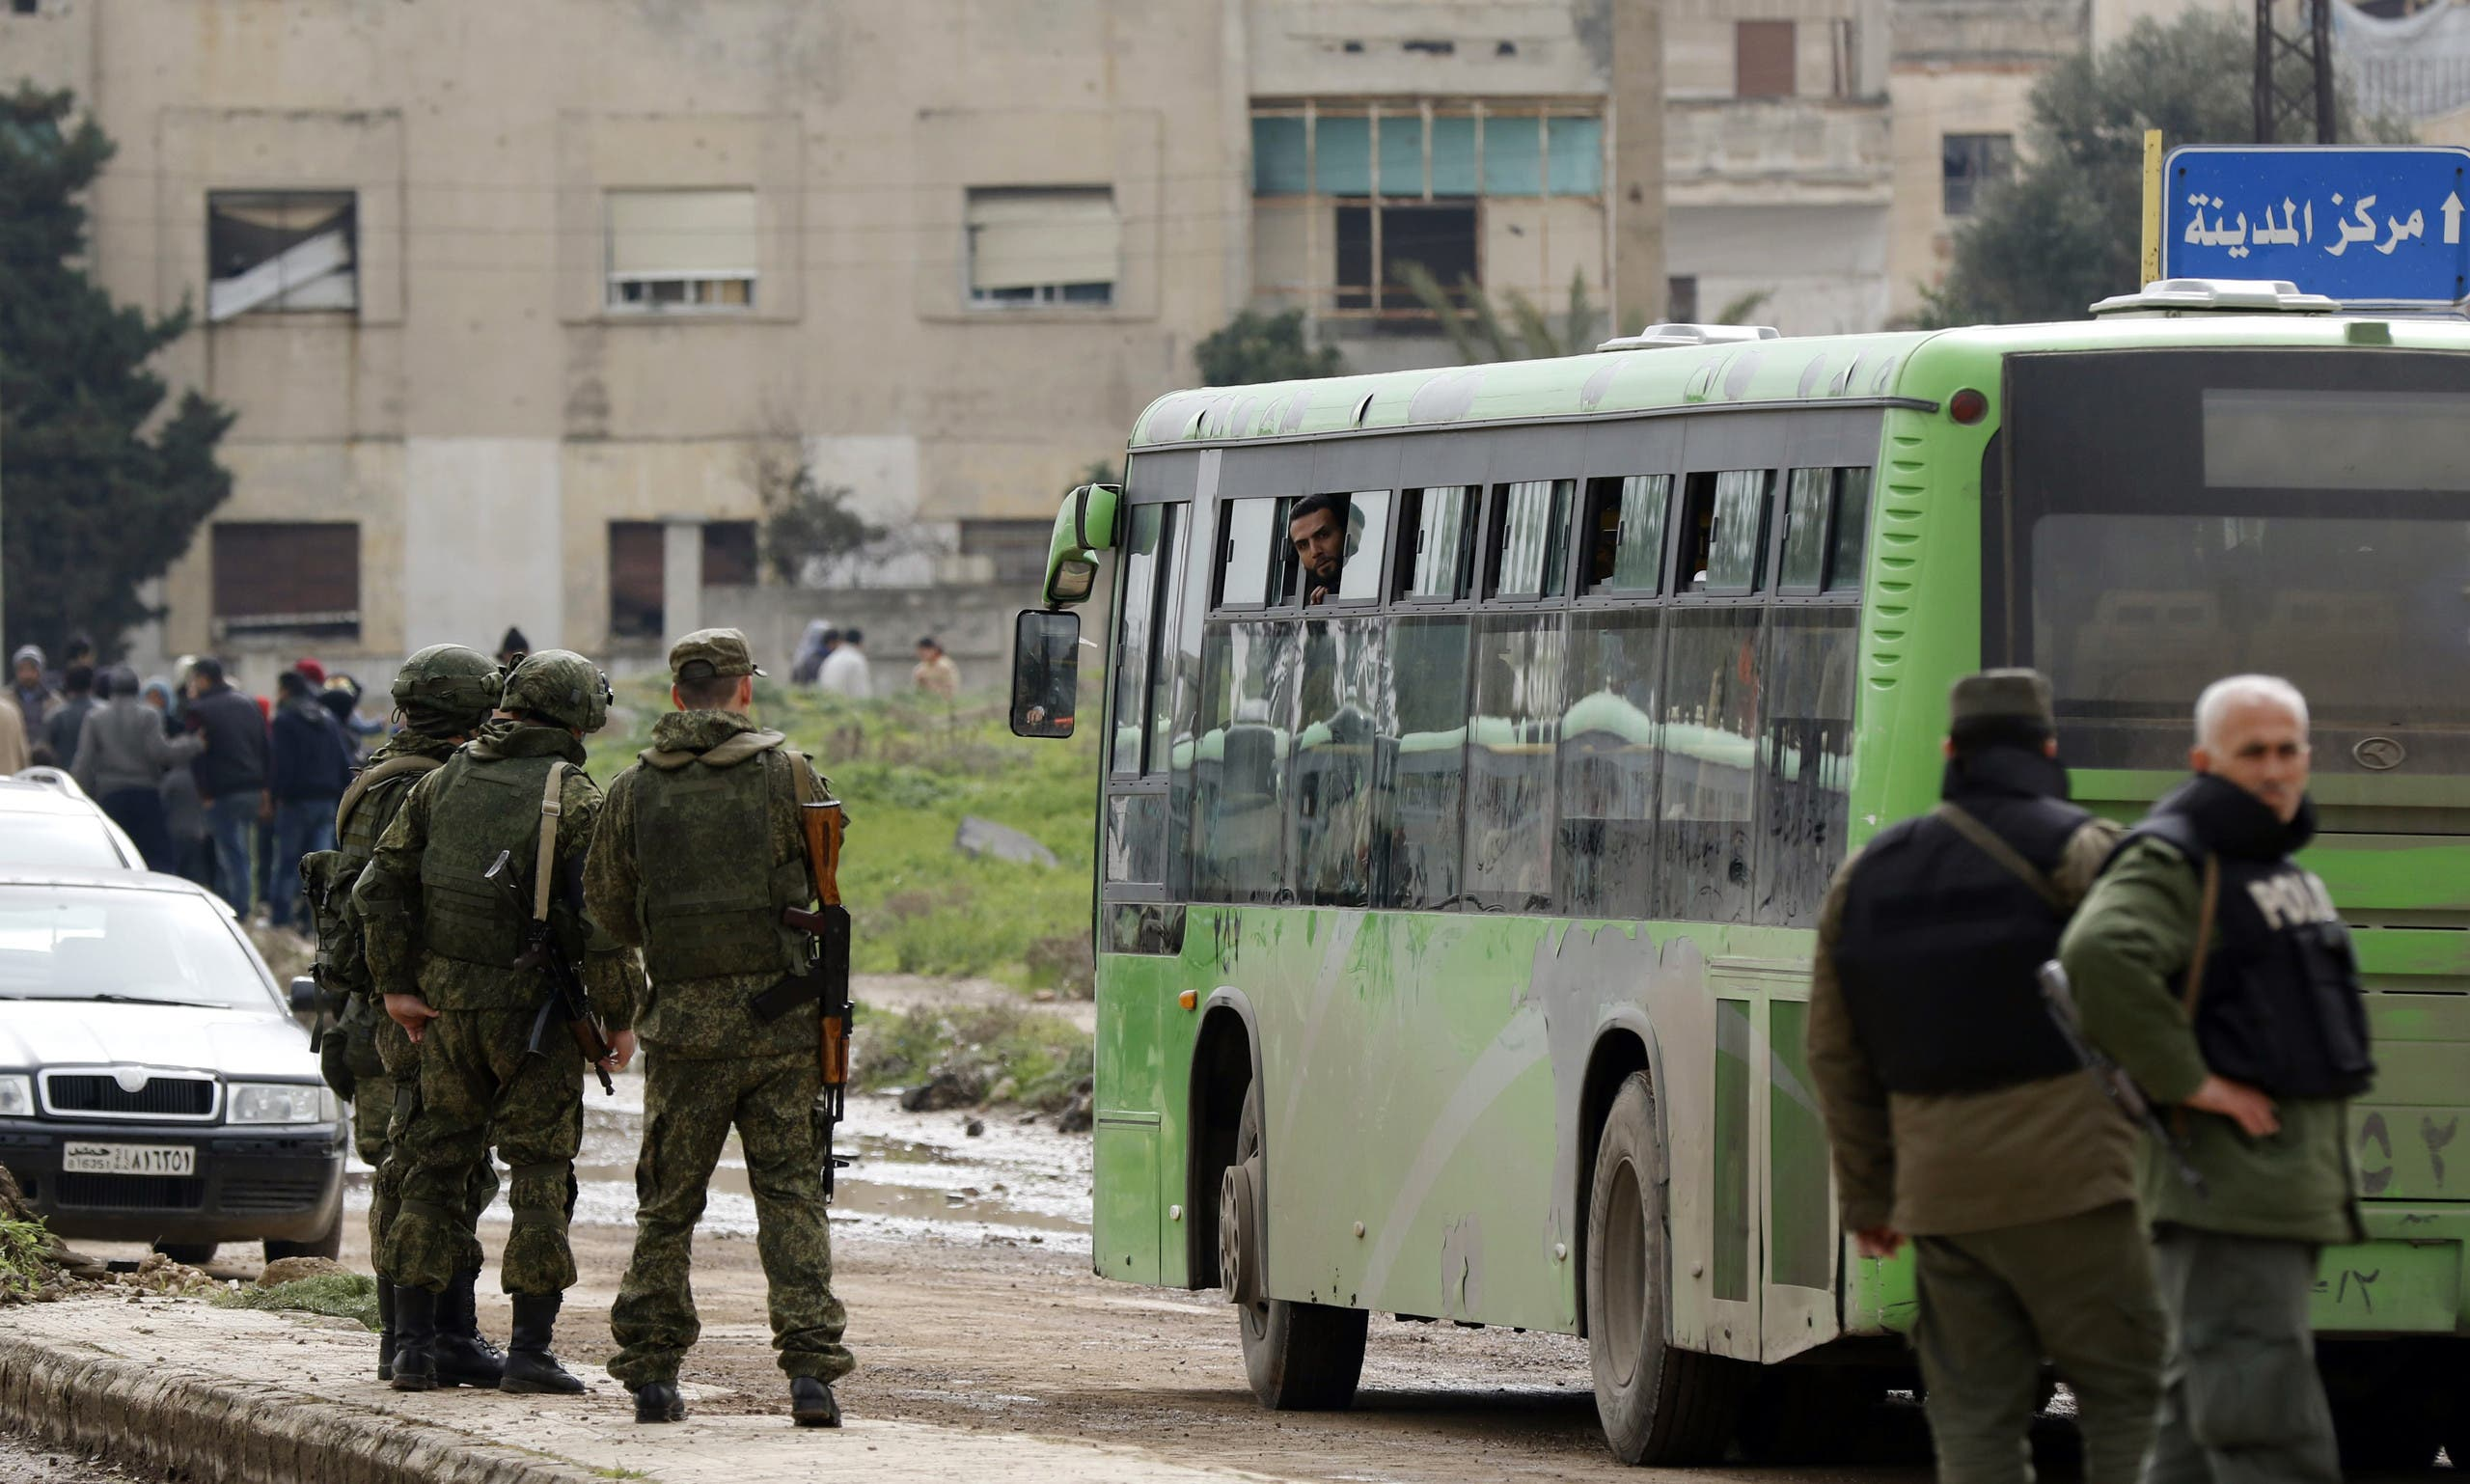 Members of the Russian Military police stand guard as a bus drives past during the first phase of the Russian-supervised deal to complete the evacuation of fighters and civilians, on the edge of the rebel-held Waer neighbourhood in the central city of Homs on March 18, 2017.